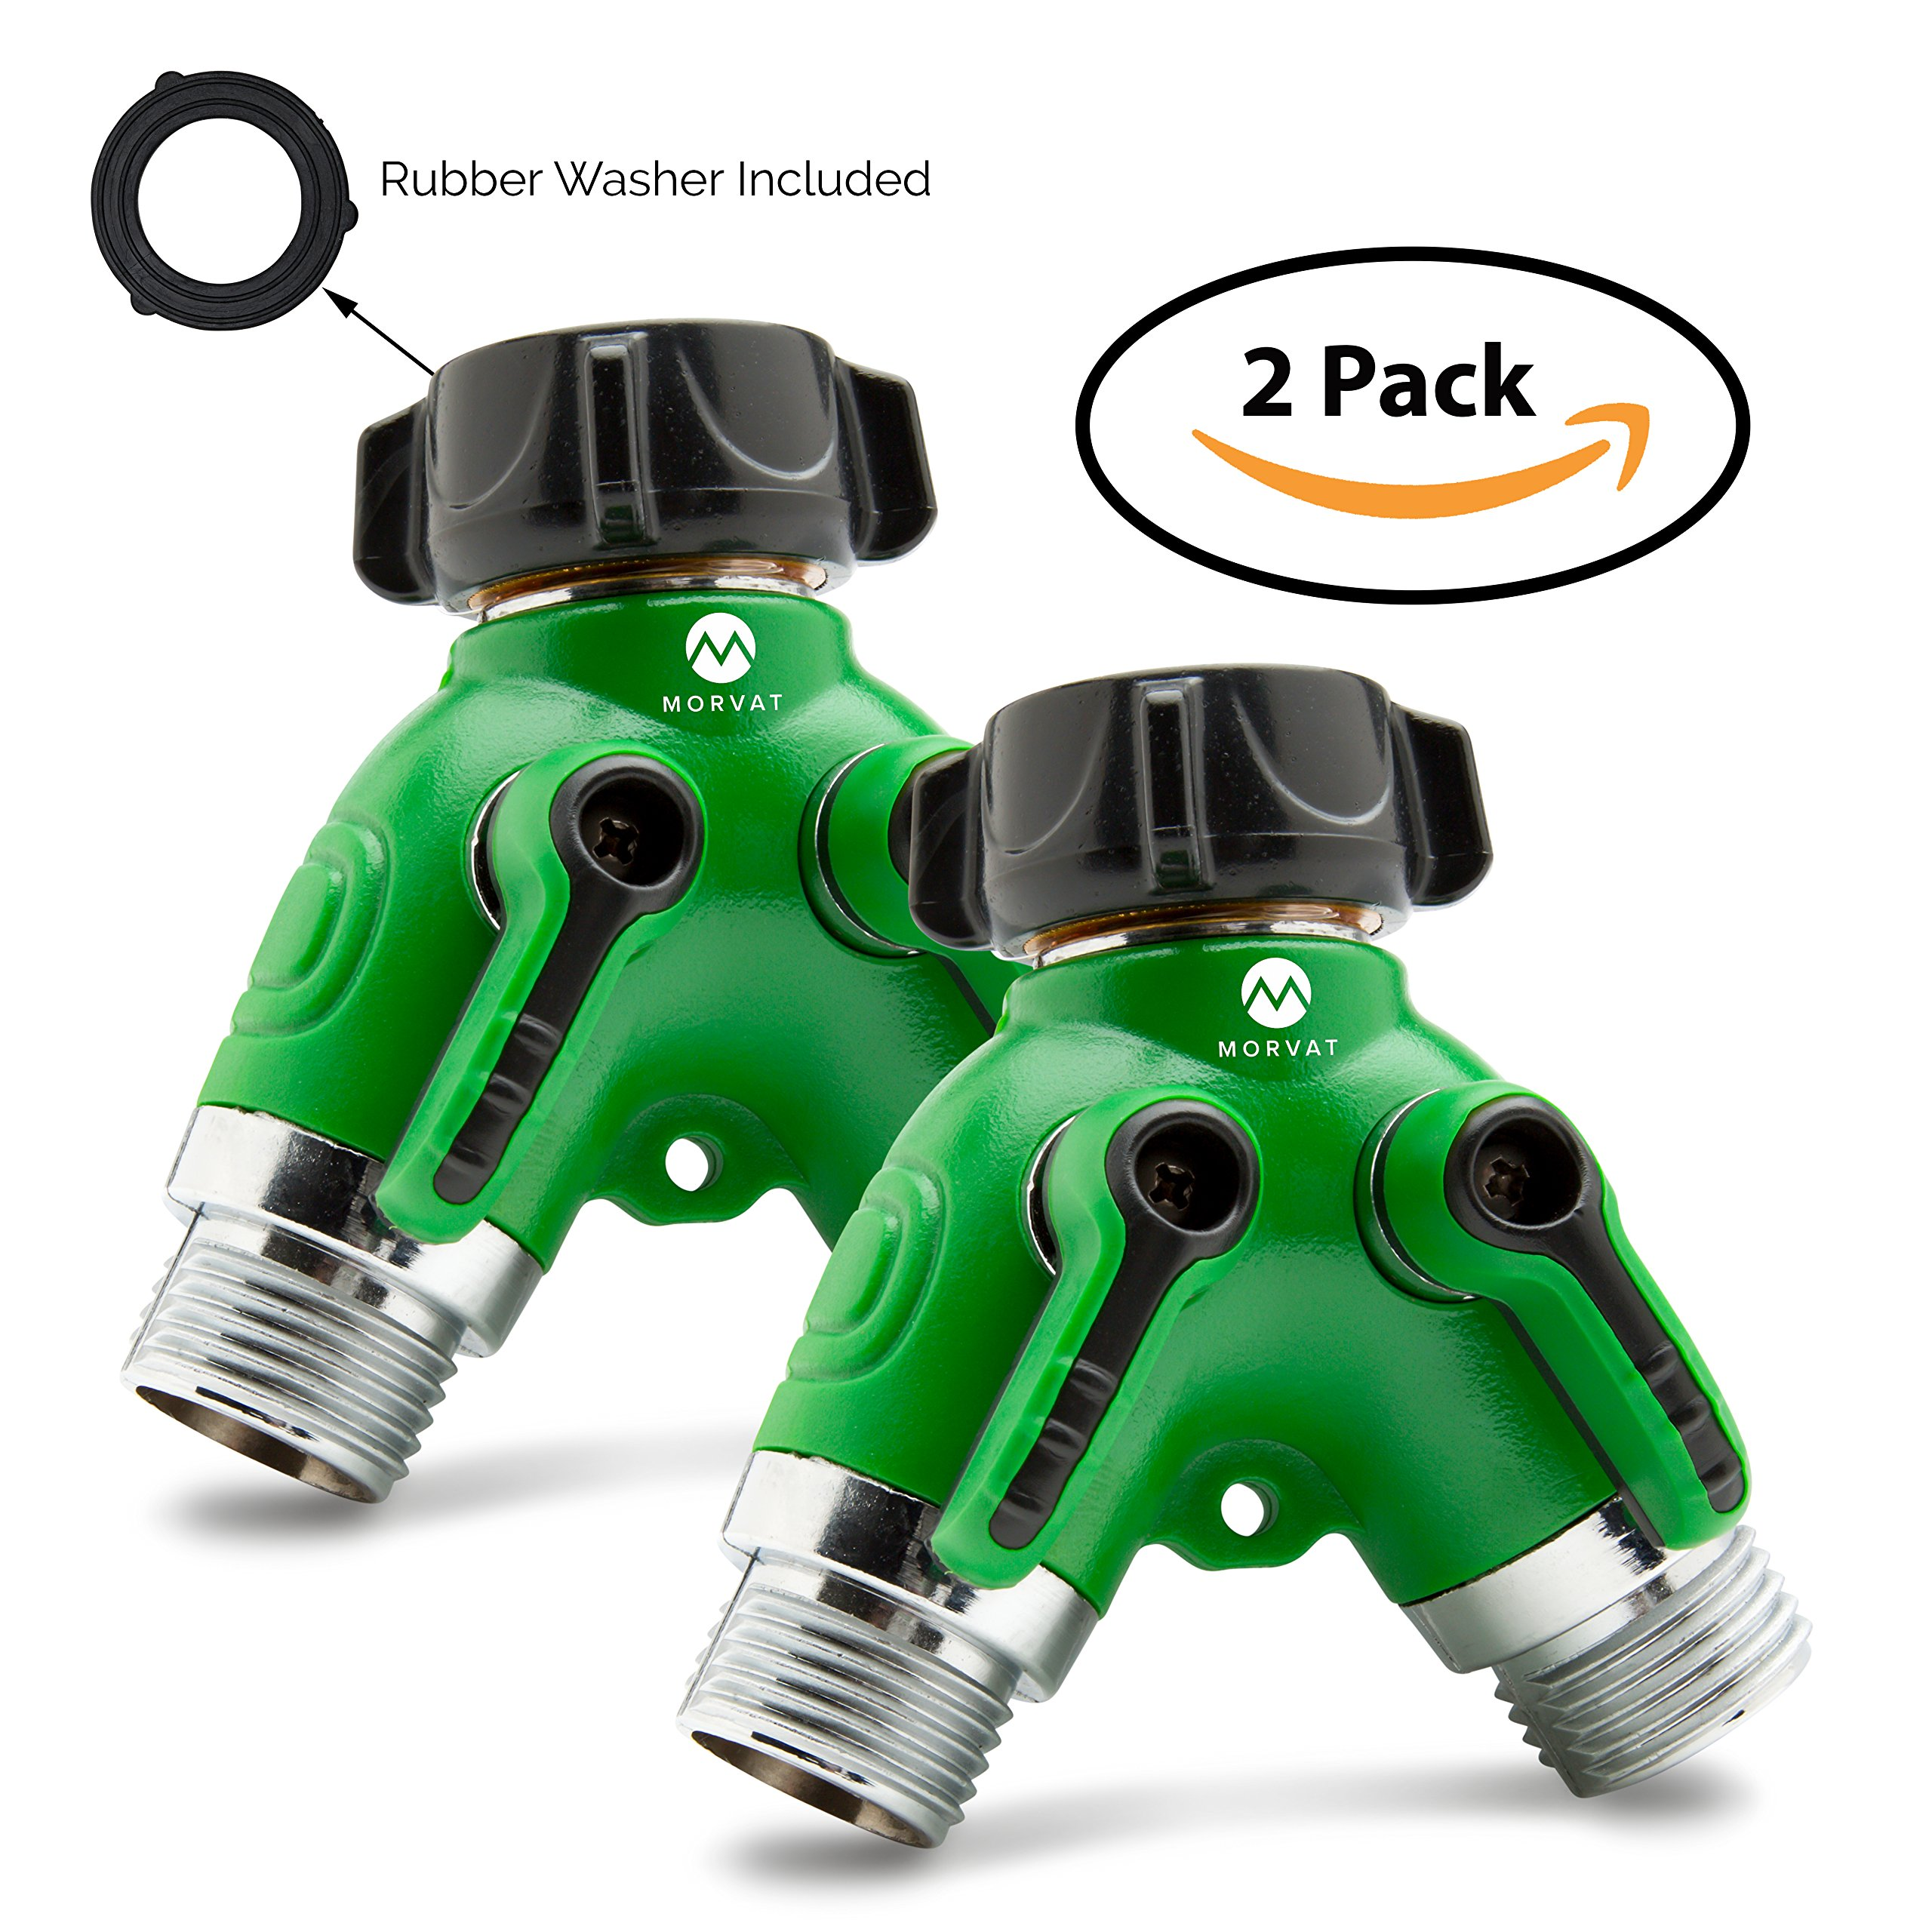 Morvat Heavy Duty Metal Garden Hose Connector Splitter with Rubber Grip Coating (2 Way Y Connector) | Water Hose Diverter, Adapter | Includes 4 Rubber Washers | Pack of 2